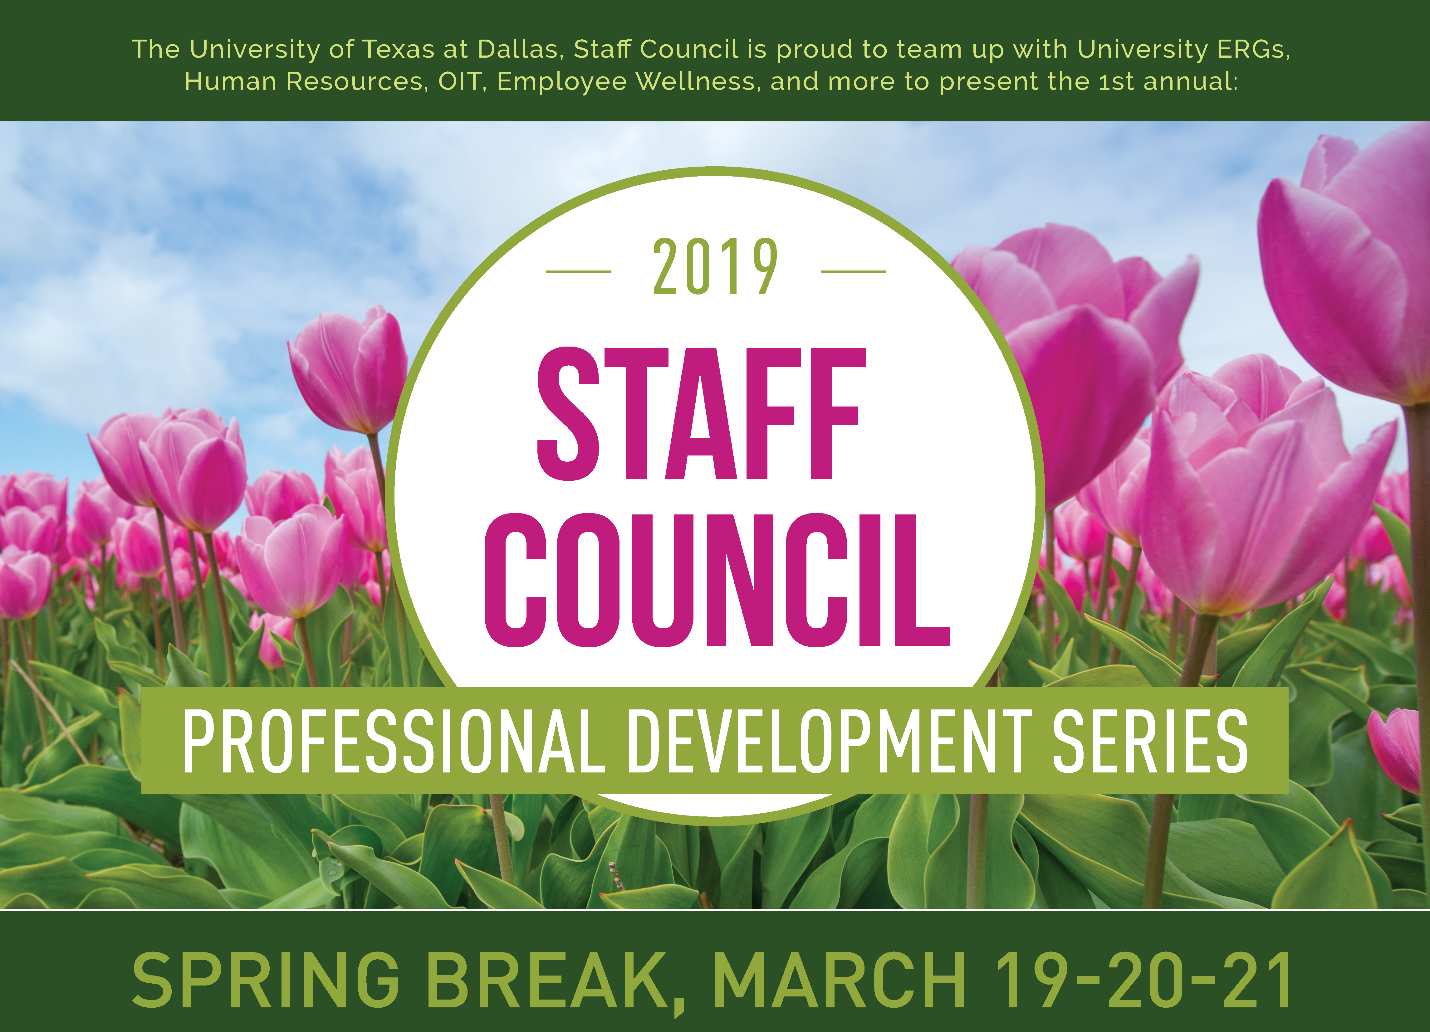 Staff Council Development Series Spring Break March 19 to 21